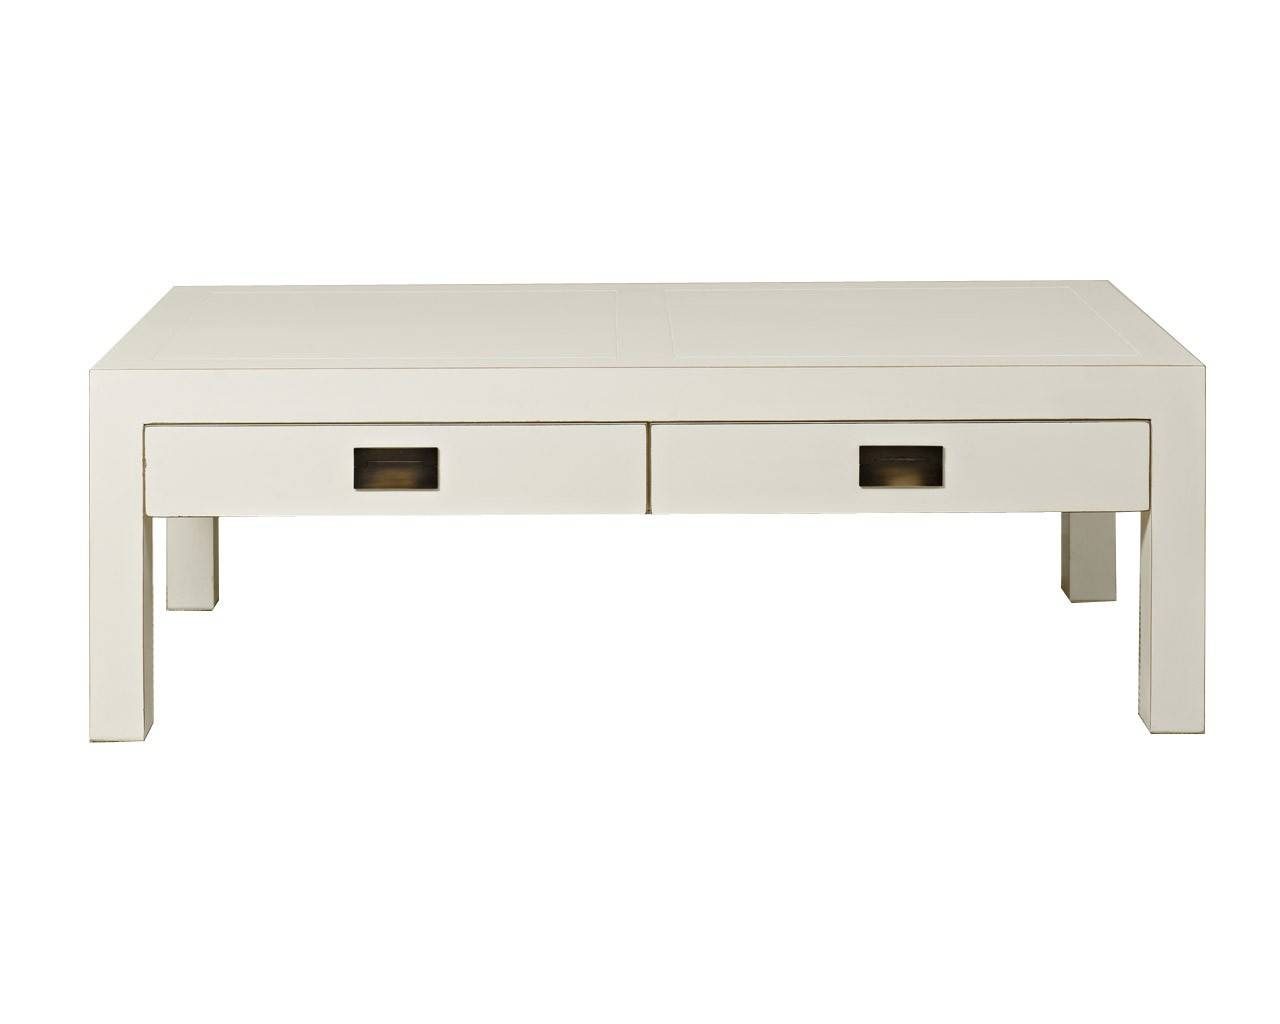 Coffee Table: Elegant Coffee Table White Designs Square White pertaining to Square White Coffee Tables (Image 4 of 30)